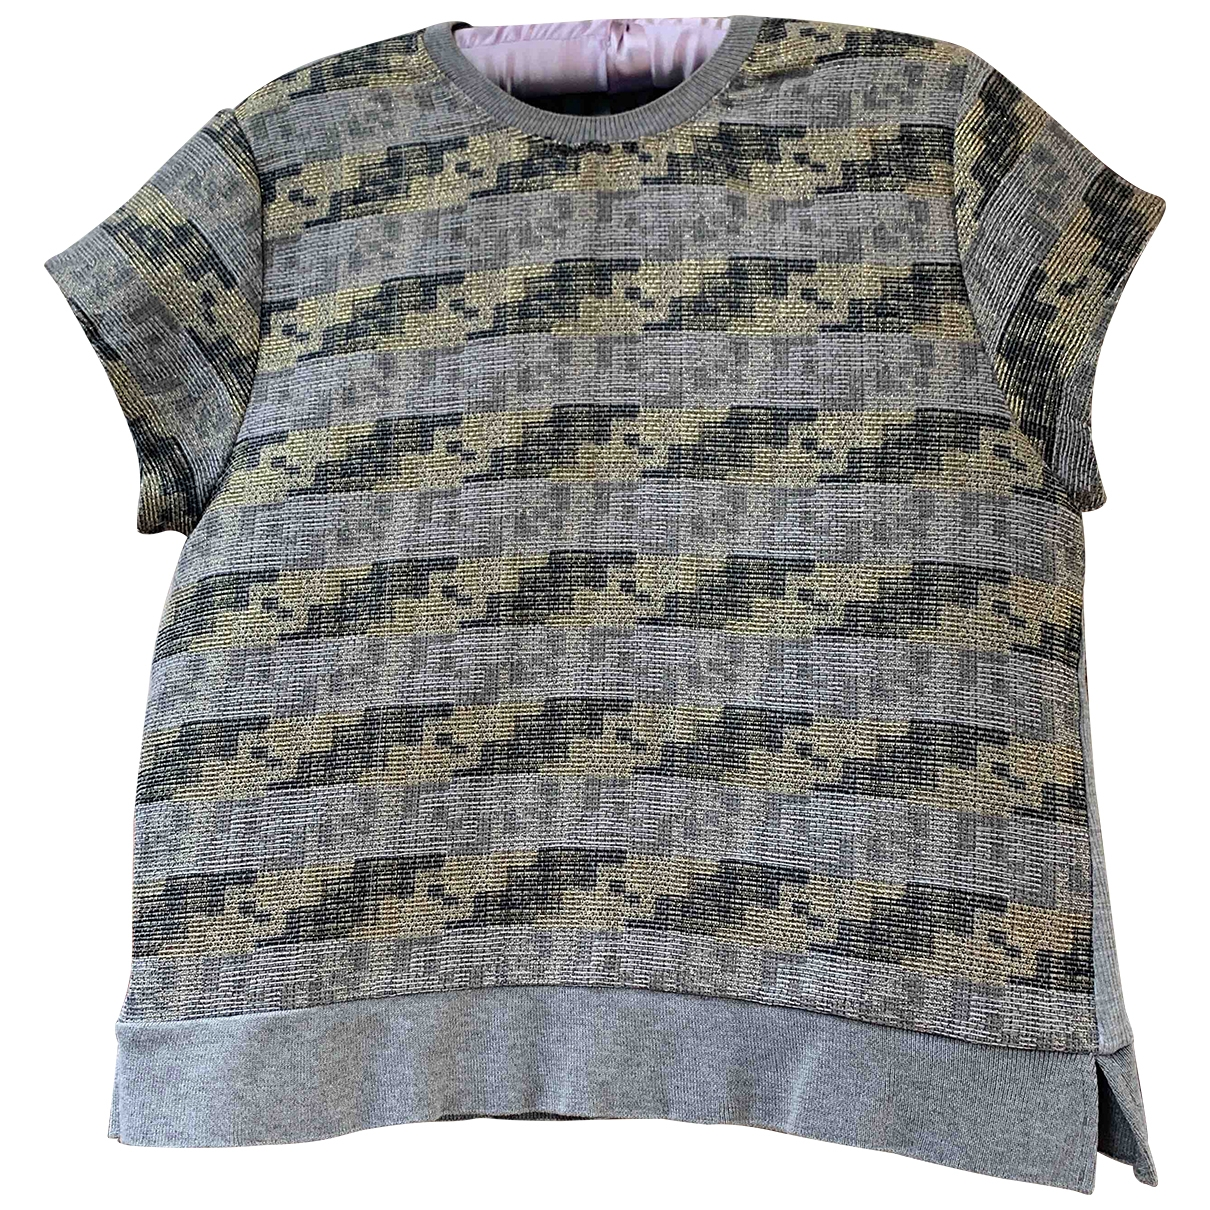 Zara \N Grey Tweed  top for Women M International